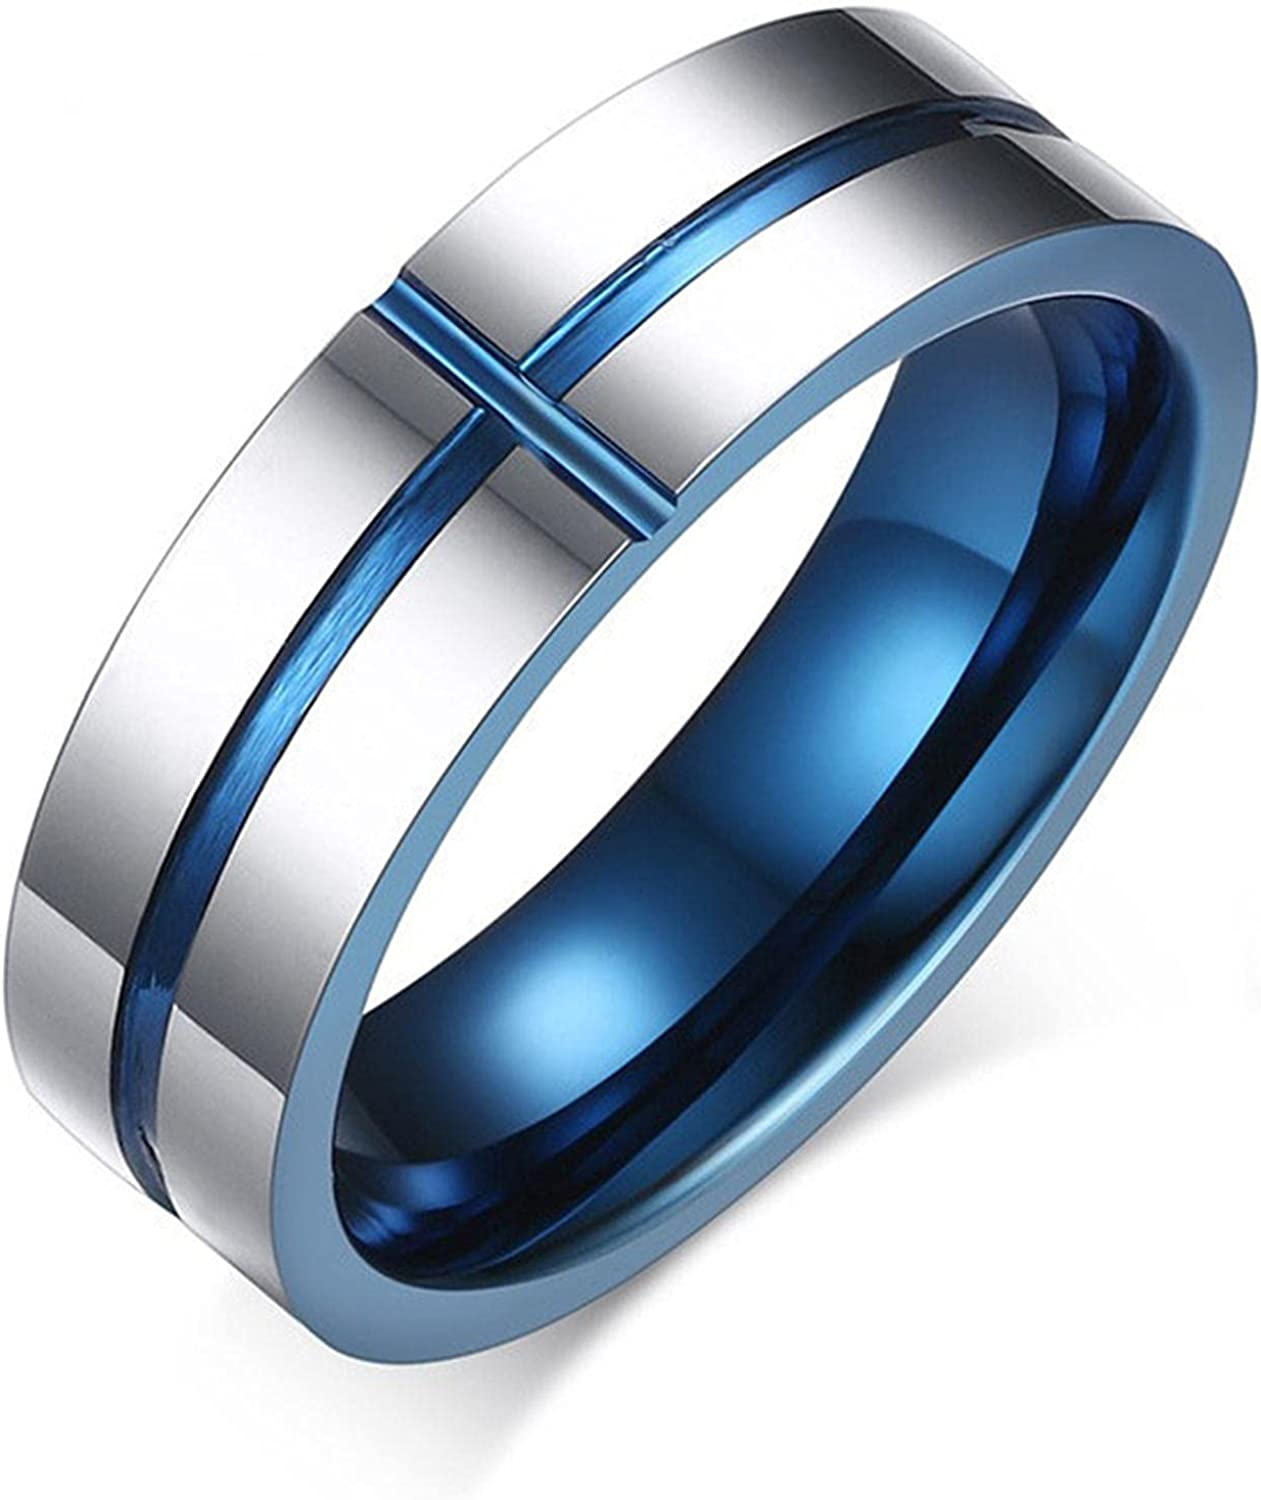 Tungsten Carbide Rings 6mm Wedding Bands Men's Jewelry Cross Ring